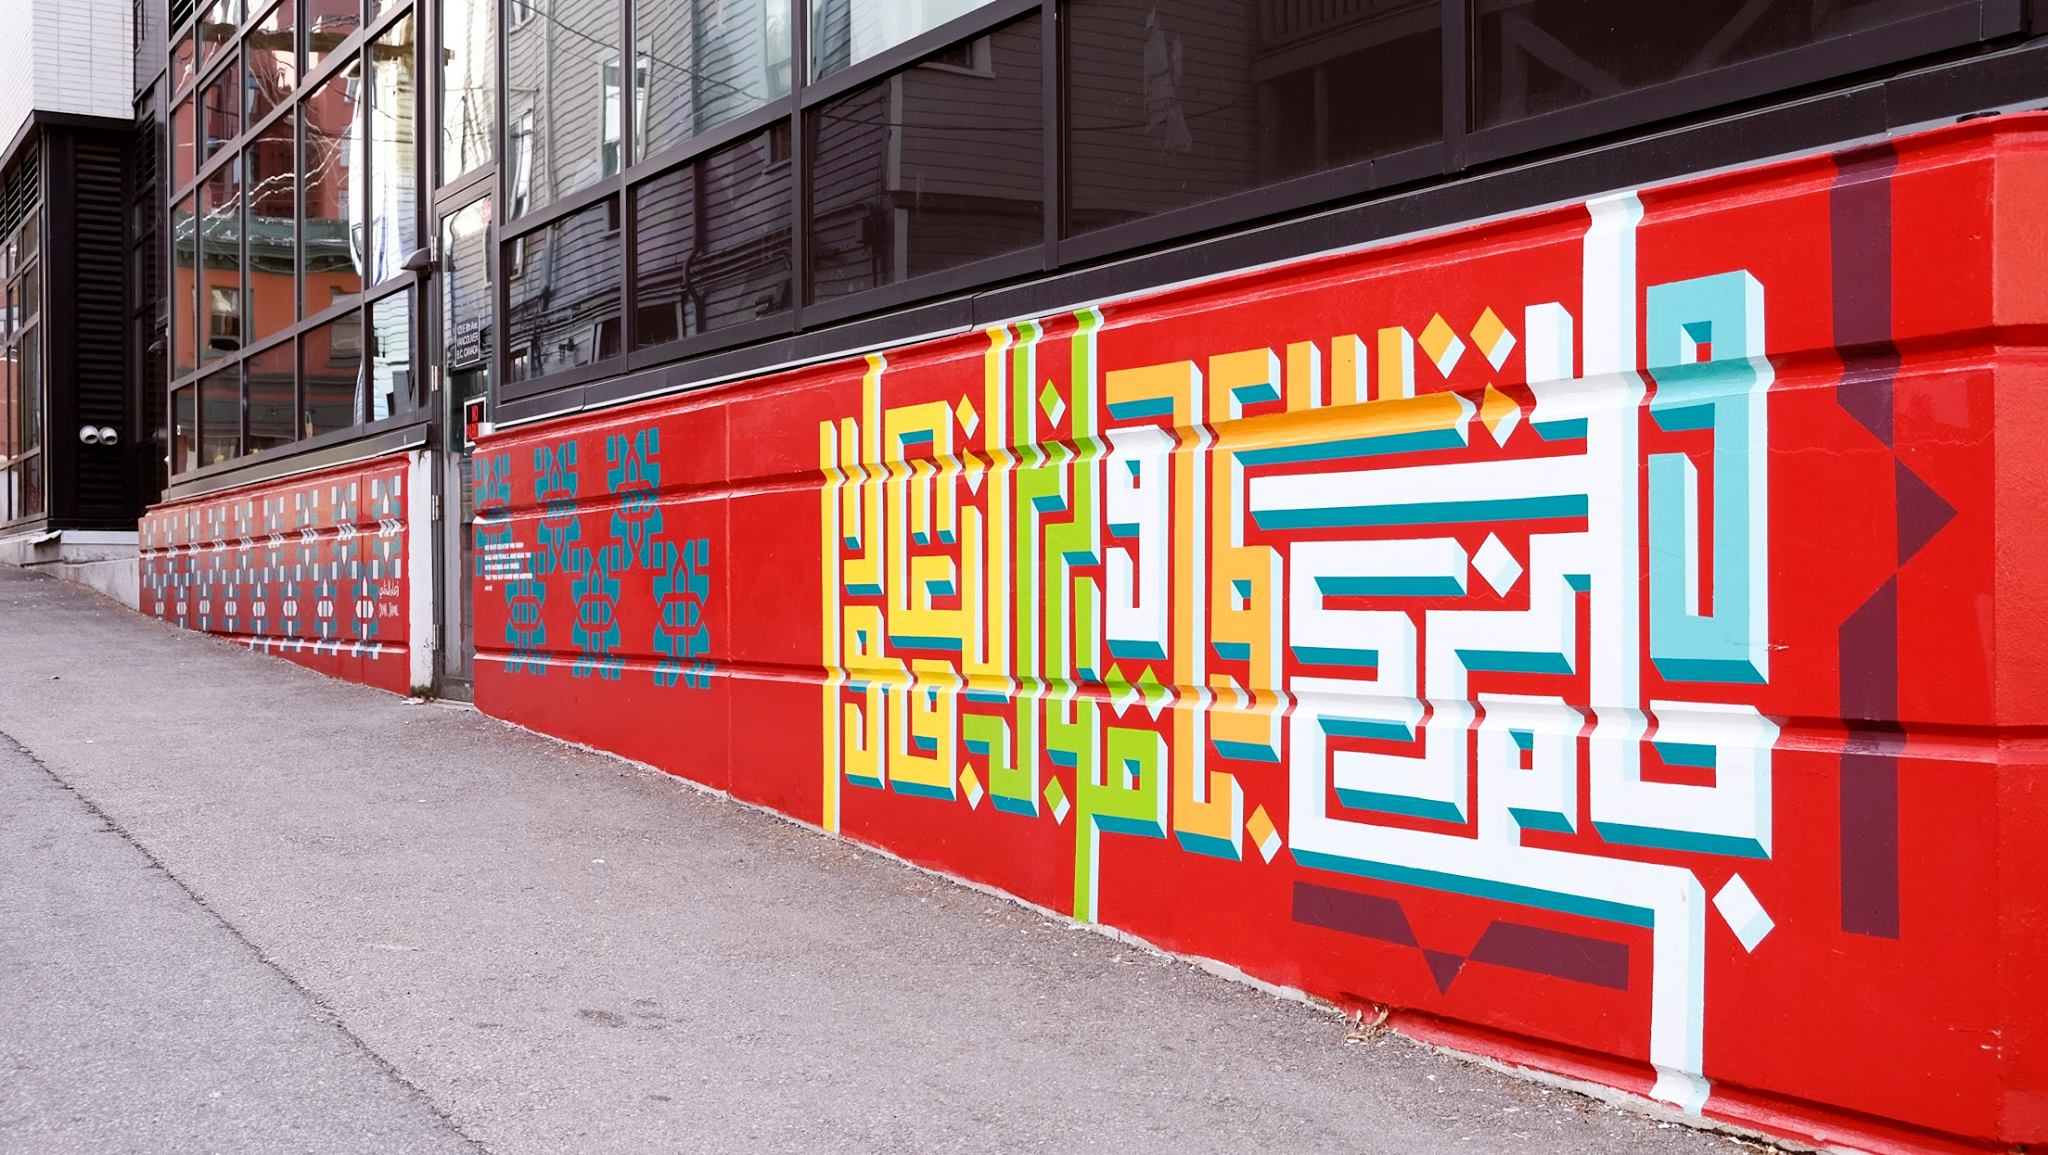 The east facing side of the finished mural.